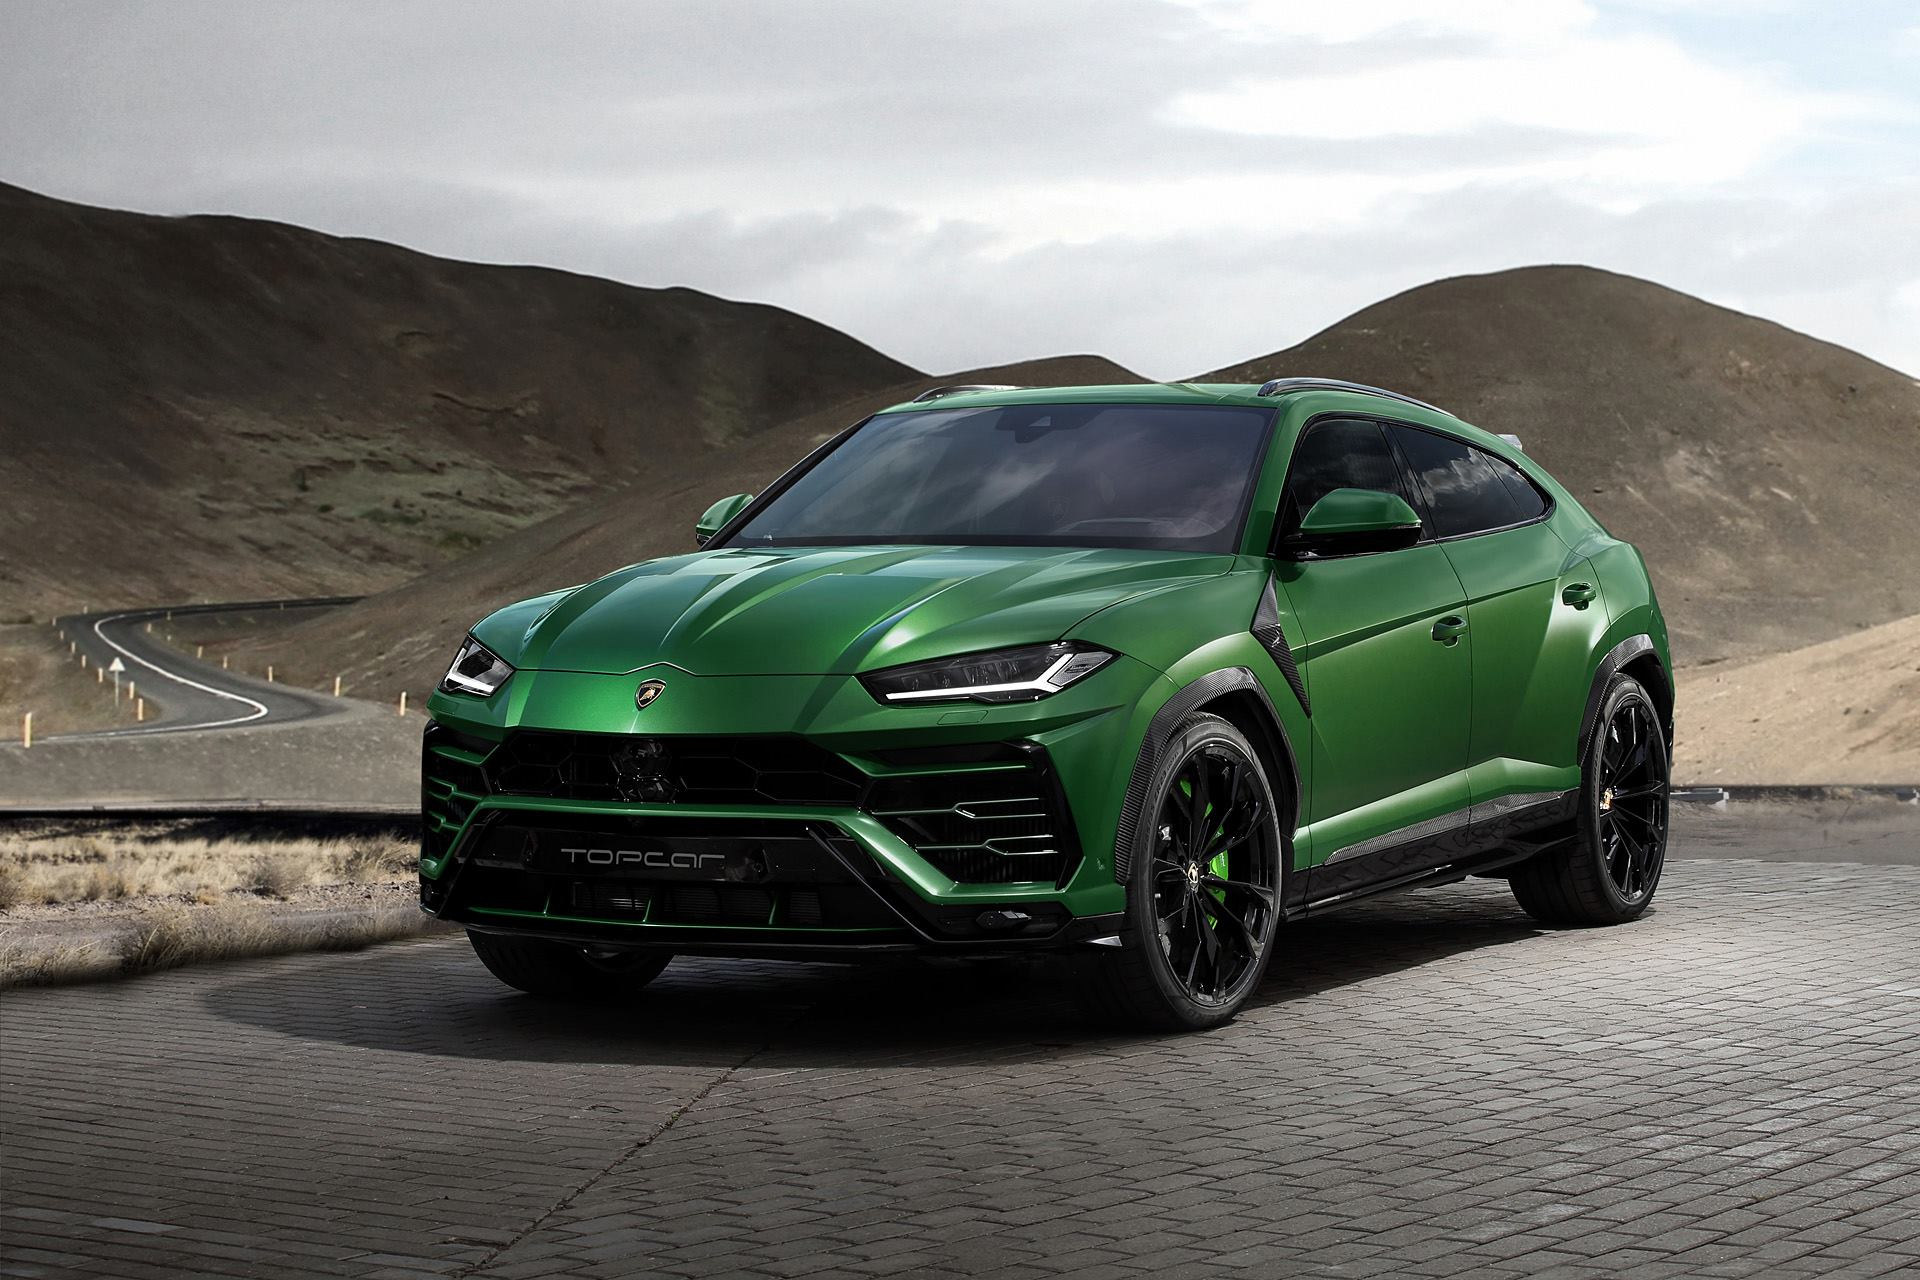 TopCar Lamborghini Urus Revealed with Military Green Paint